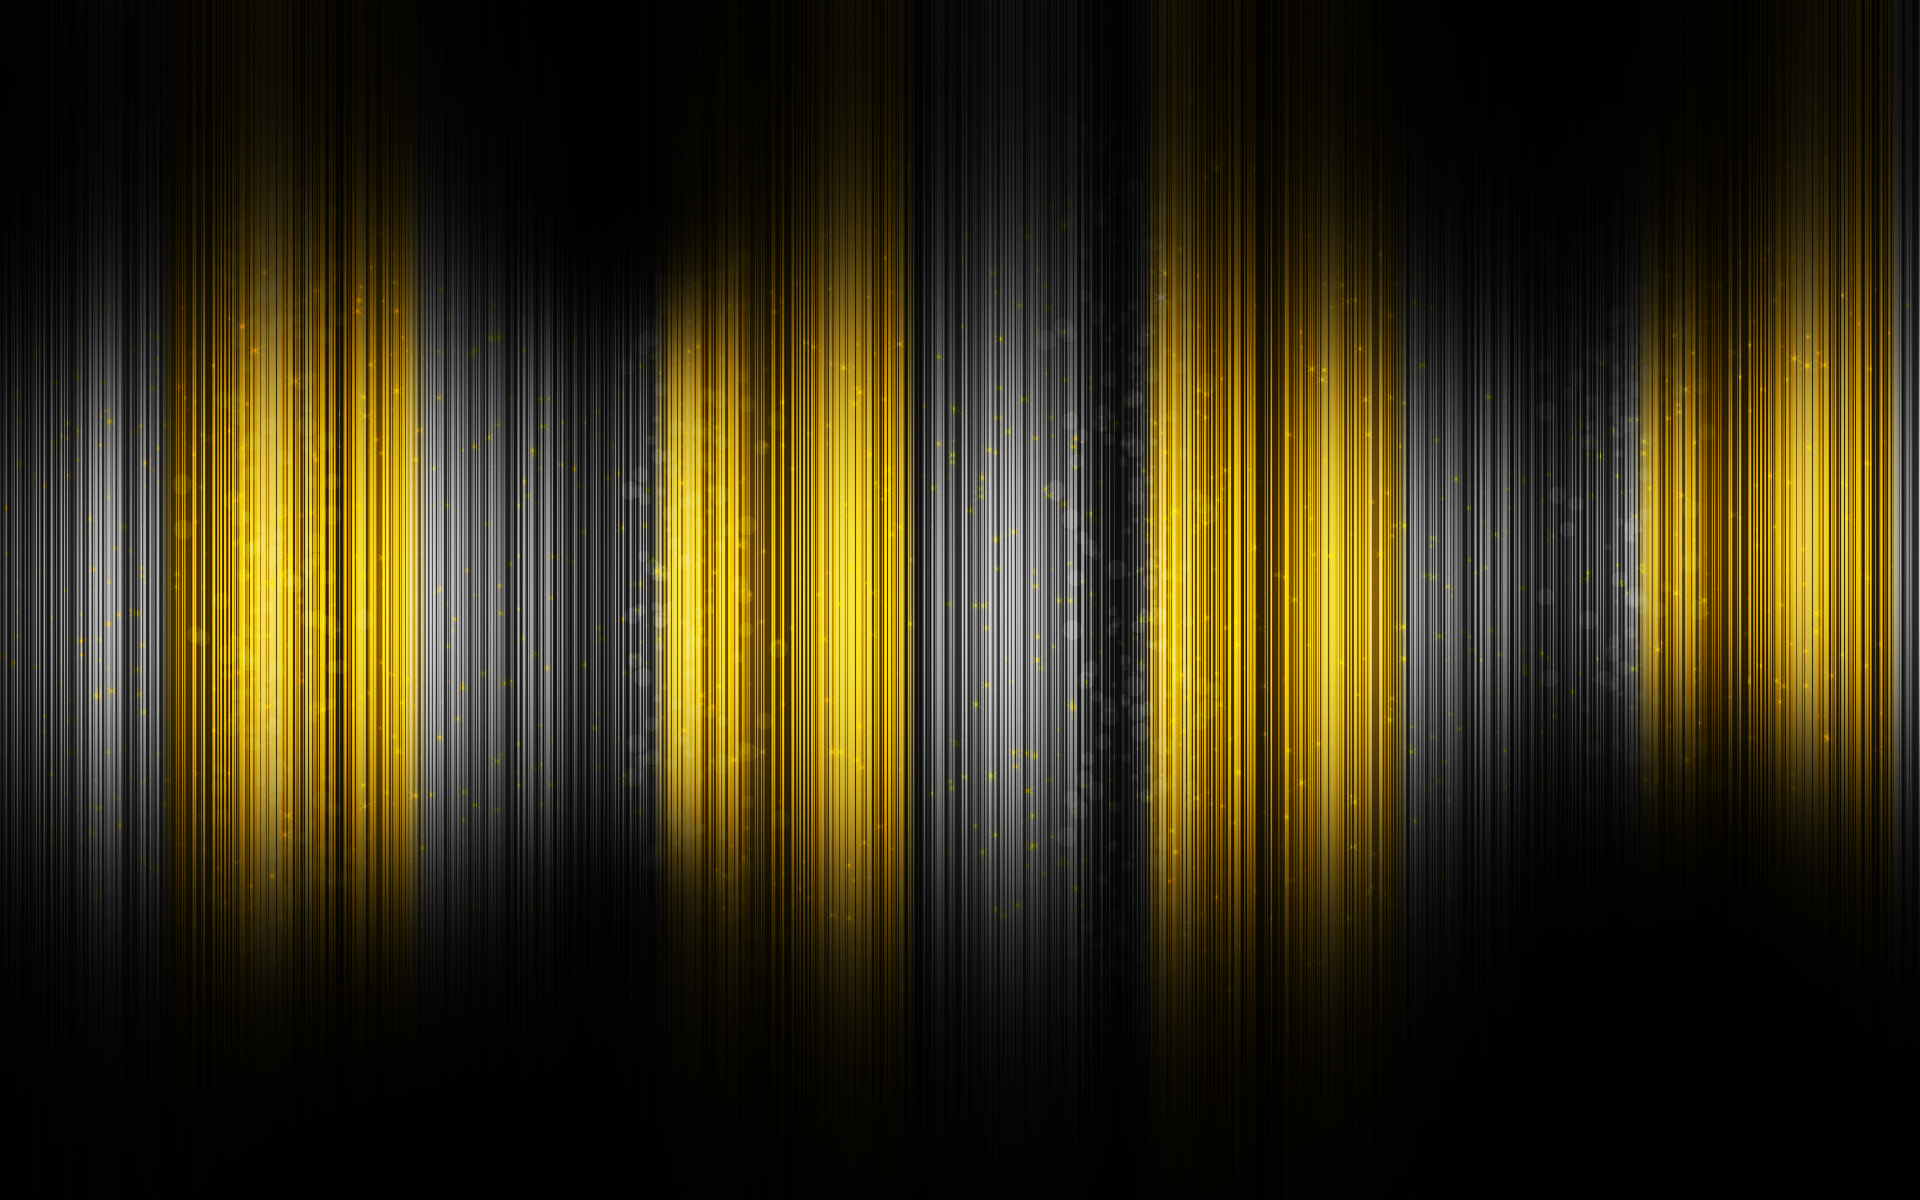 Abstract Yellow And Black Latest HD Wallpaper 1920x1200